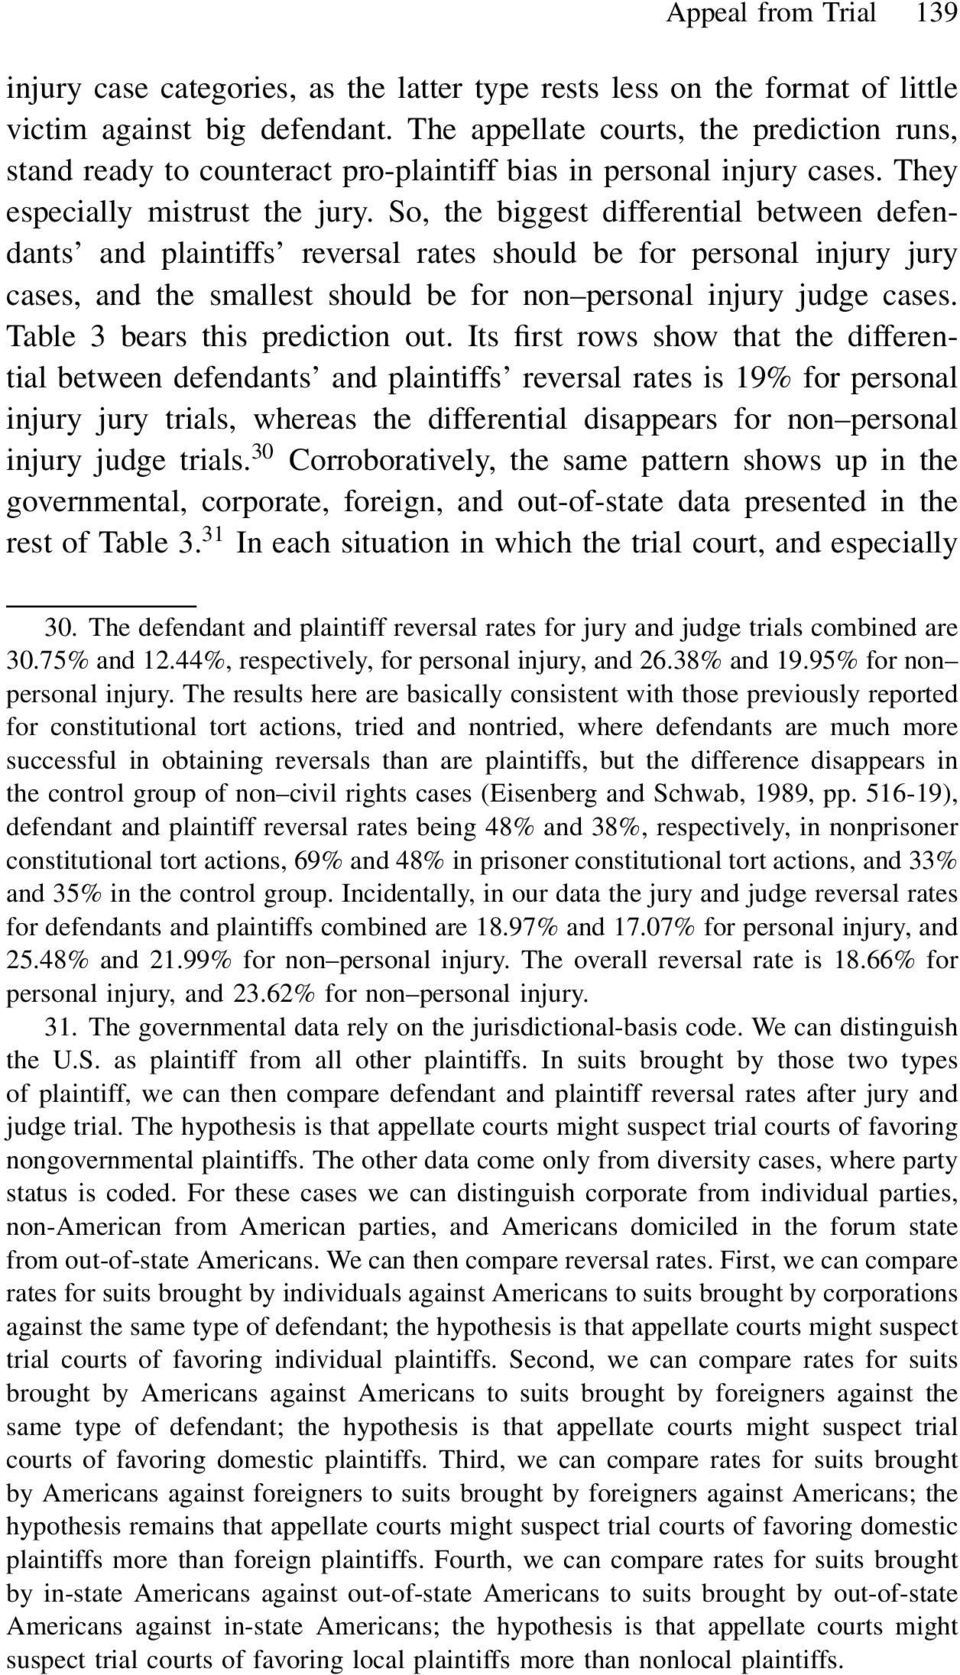 So, the biggest differential between defendants and plaintiffs reversal rates should be for personal injury jury cases, and the smallest should be for non personal injury judge cases.